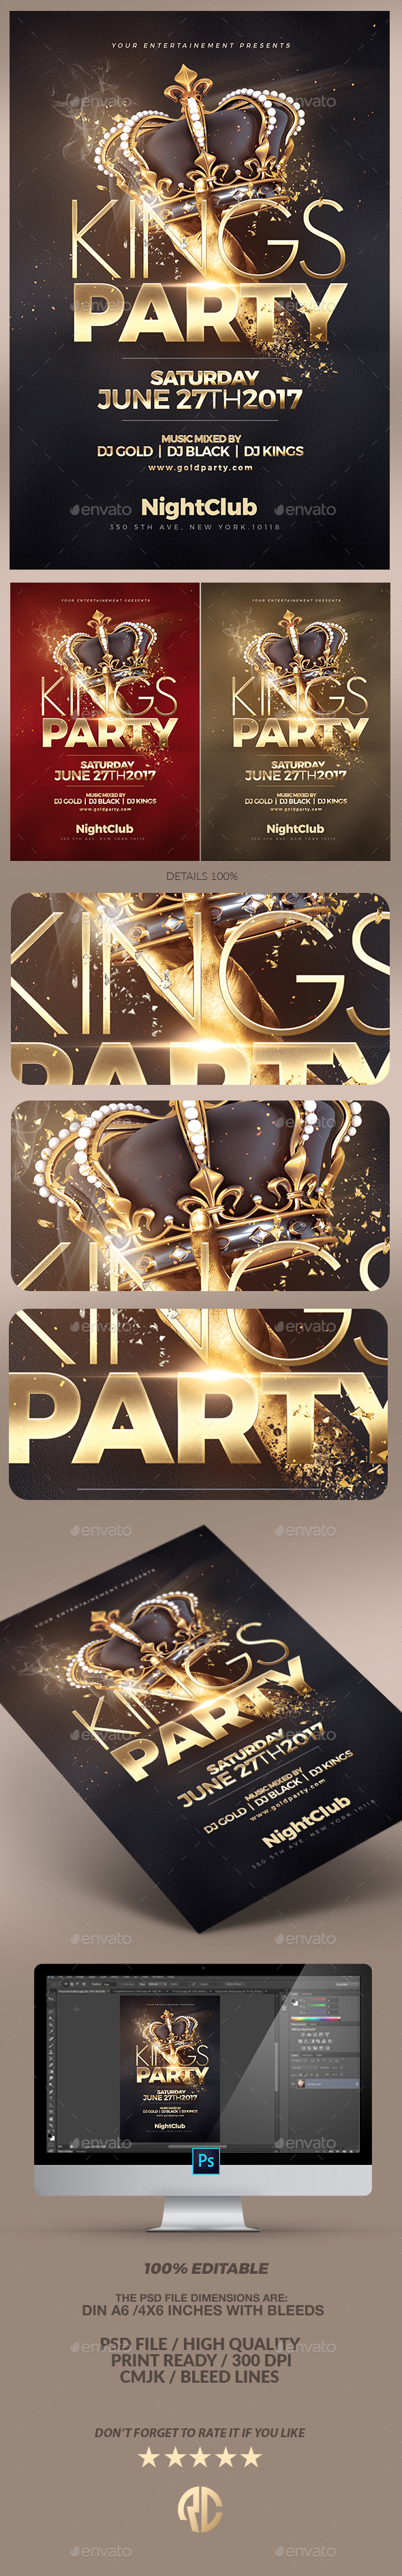 Night of Kings Party Flyer - Clubs & Parties Events